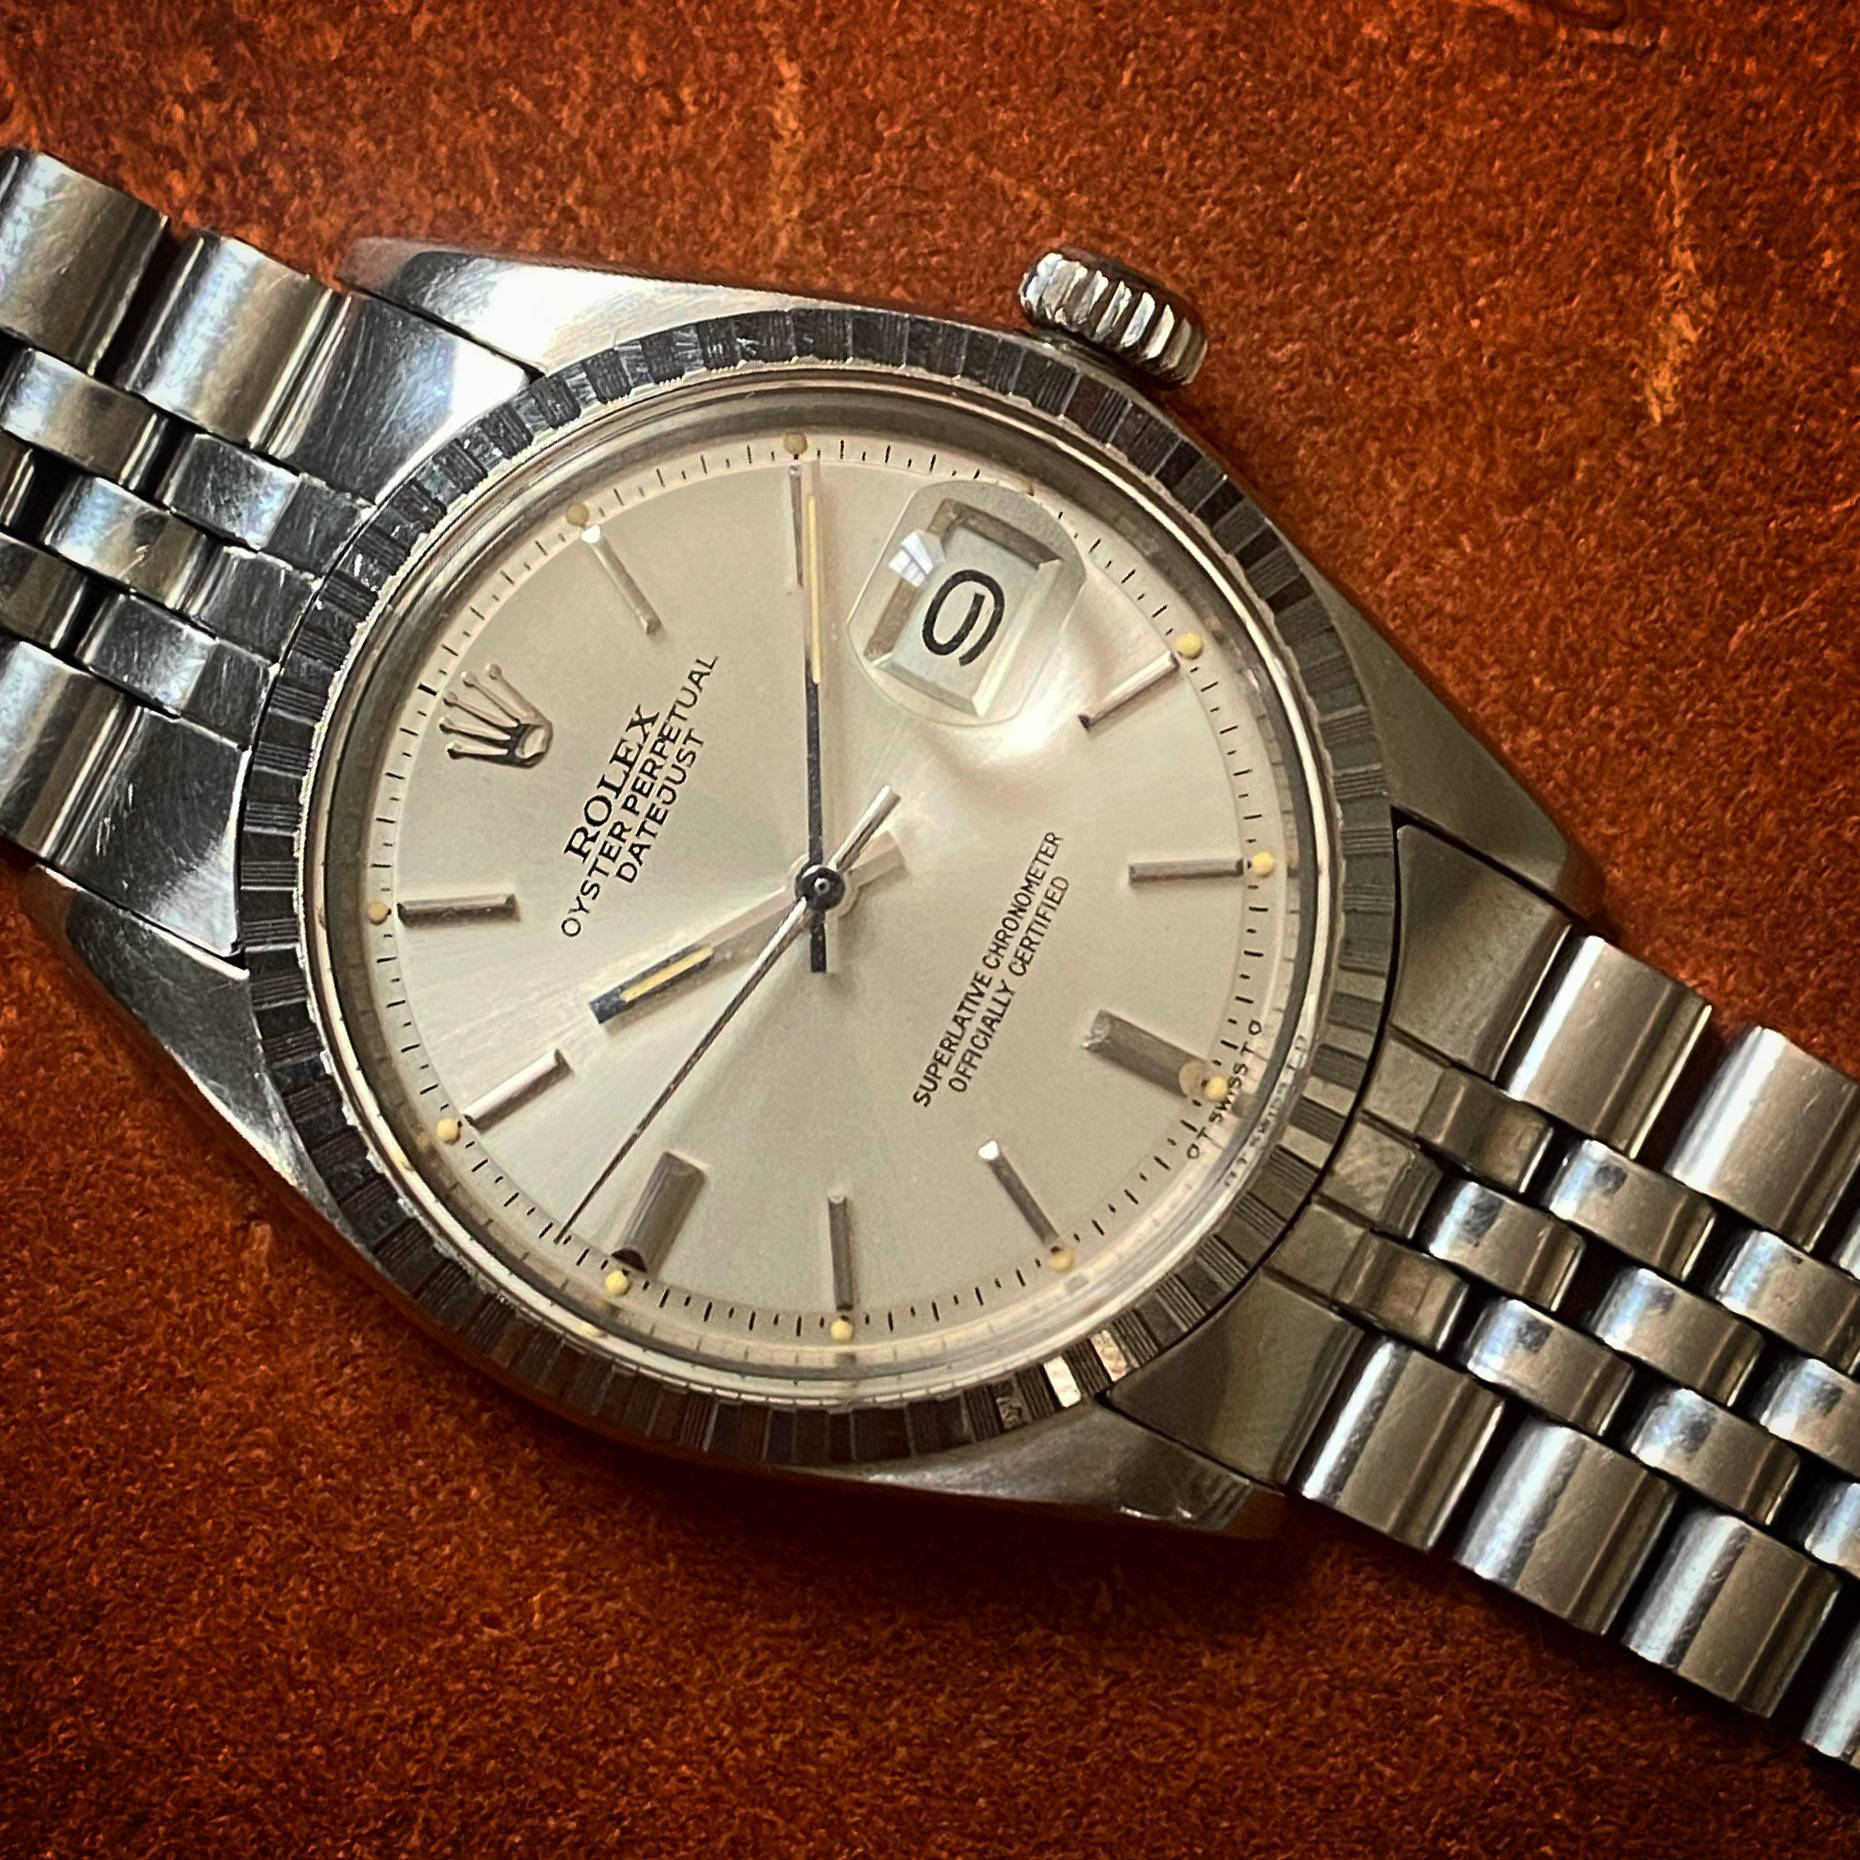 ROLEX OYSTER PERPETUAL DATEJUST SIGMA DIAL-4